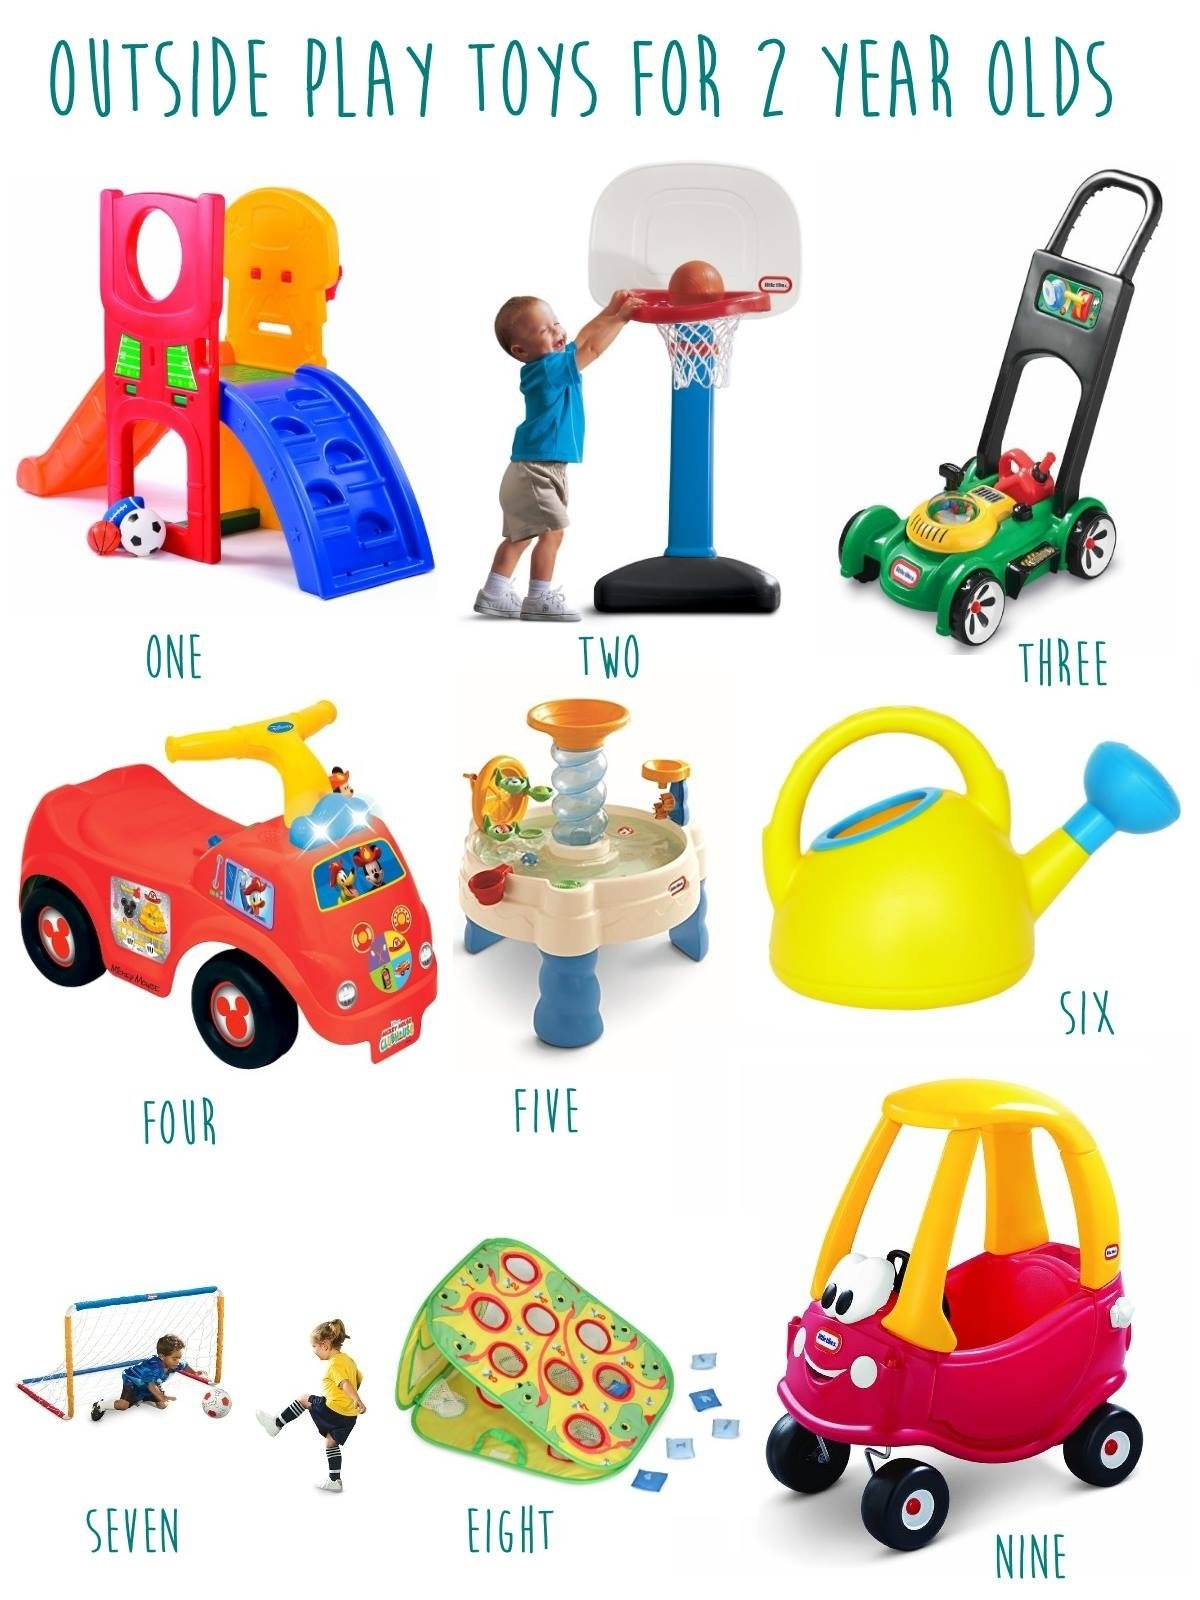 10 Unique Gift Ideas For A 2 Year Old Boy best gifts for 2 year old boy mary martha mama 2 2020